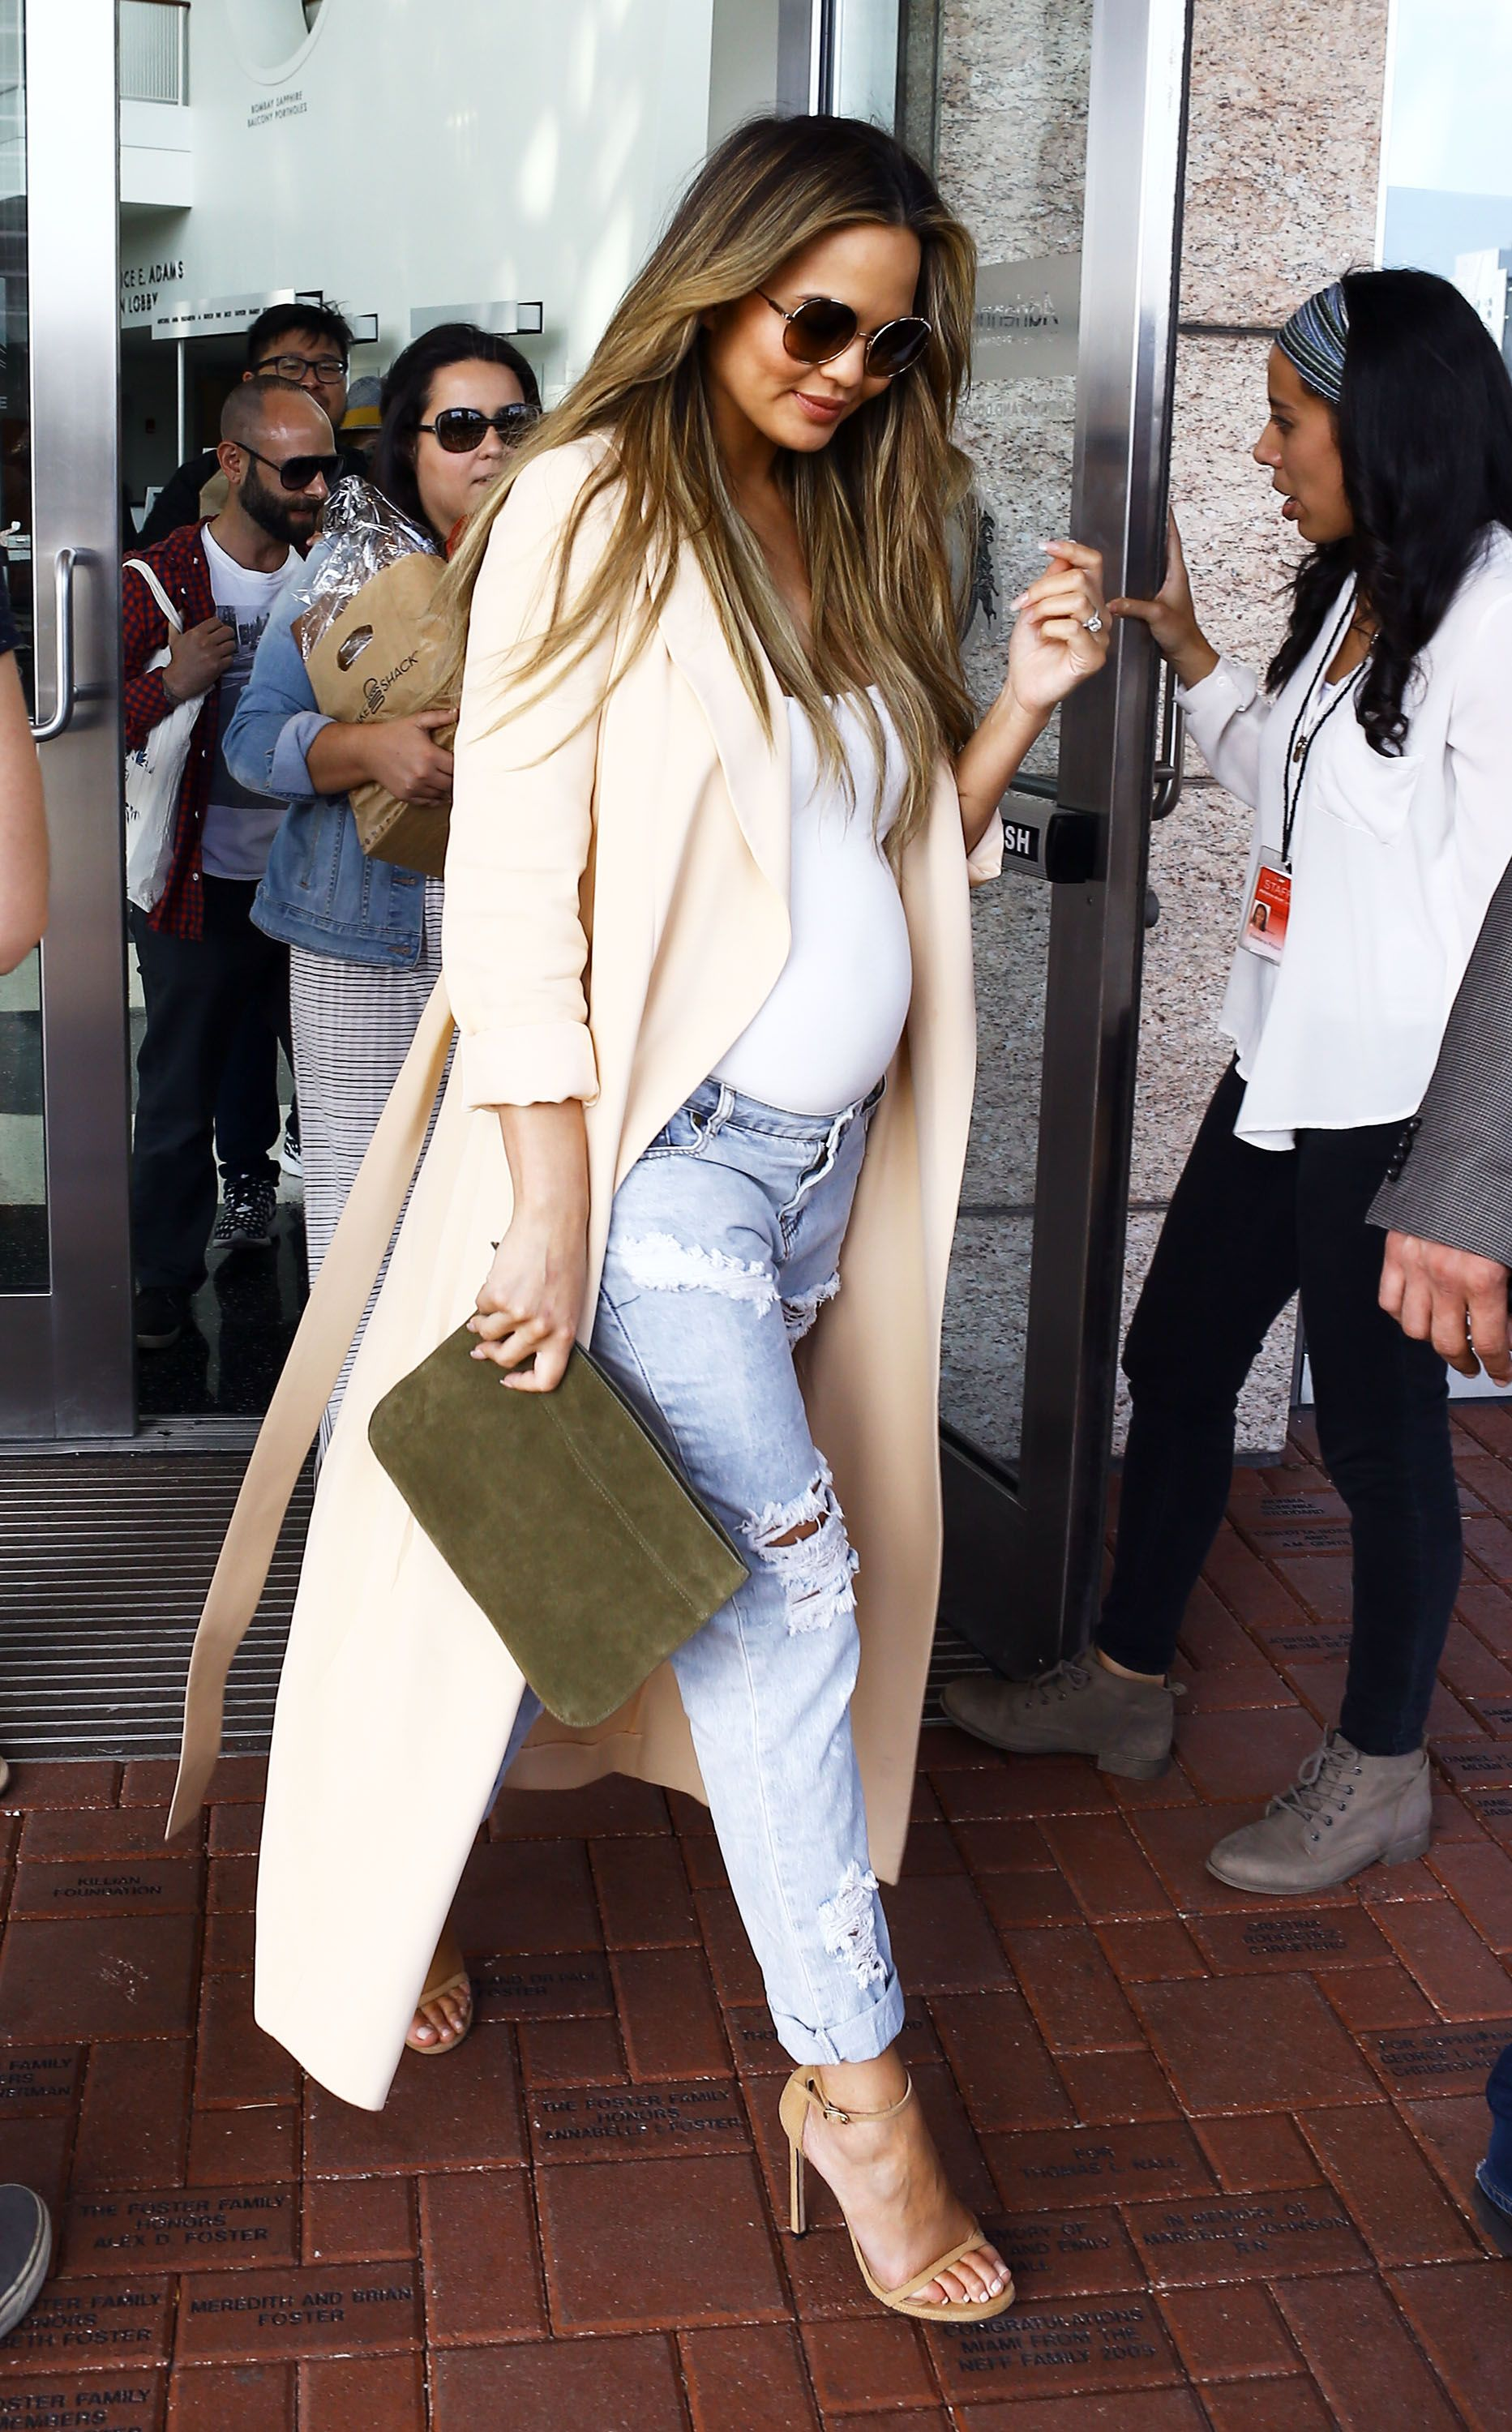 182a9b6b9a3 Teigen wore a flowing duster jacket in the faintest shade of peach over a  fitted white top and One Teaspoon distressed jeans